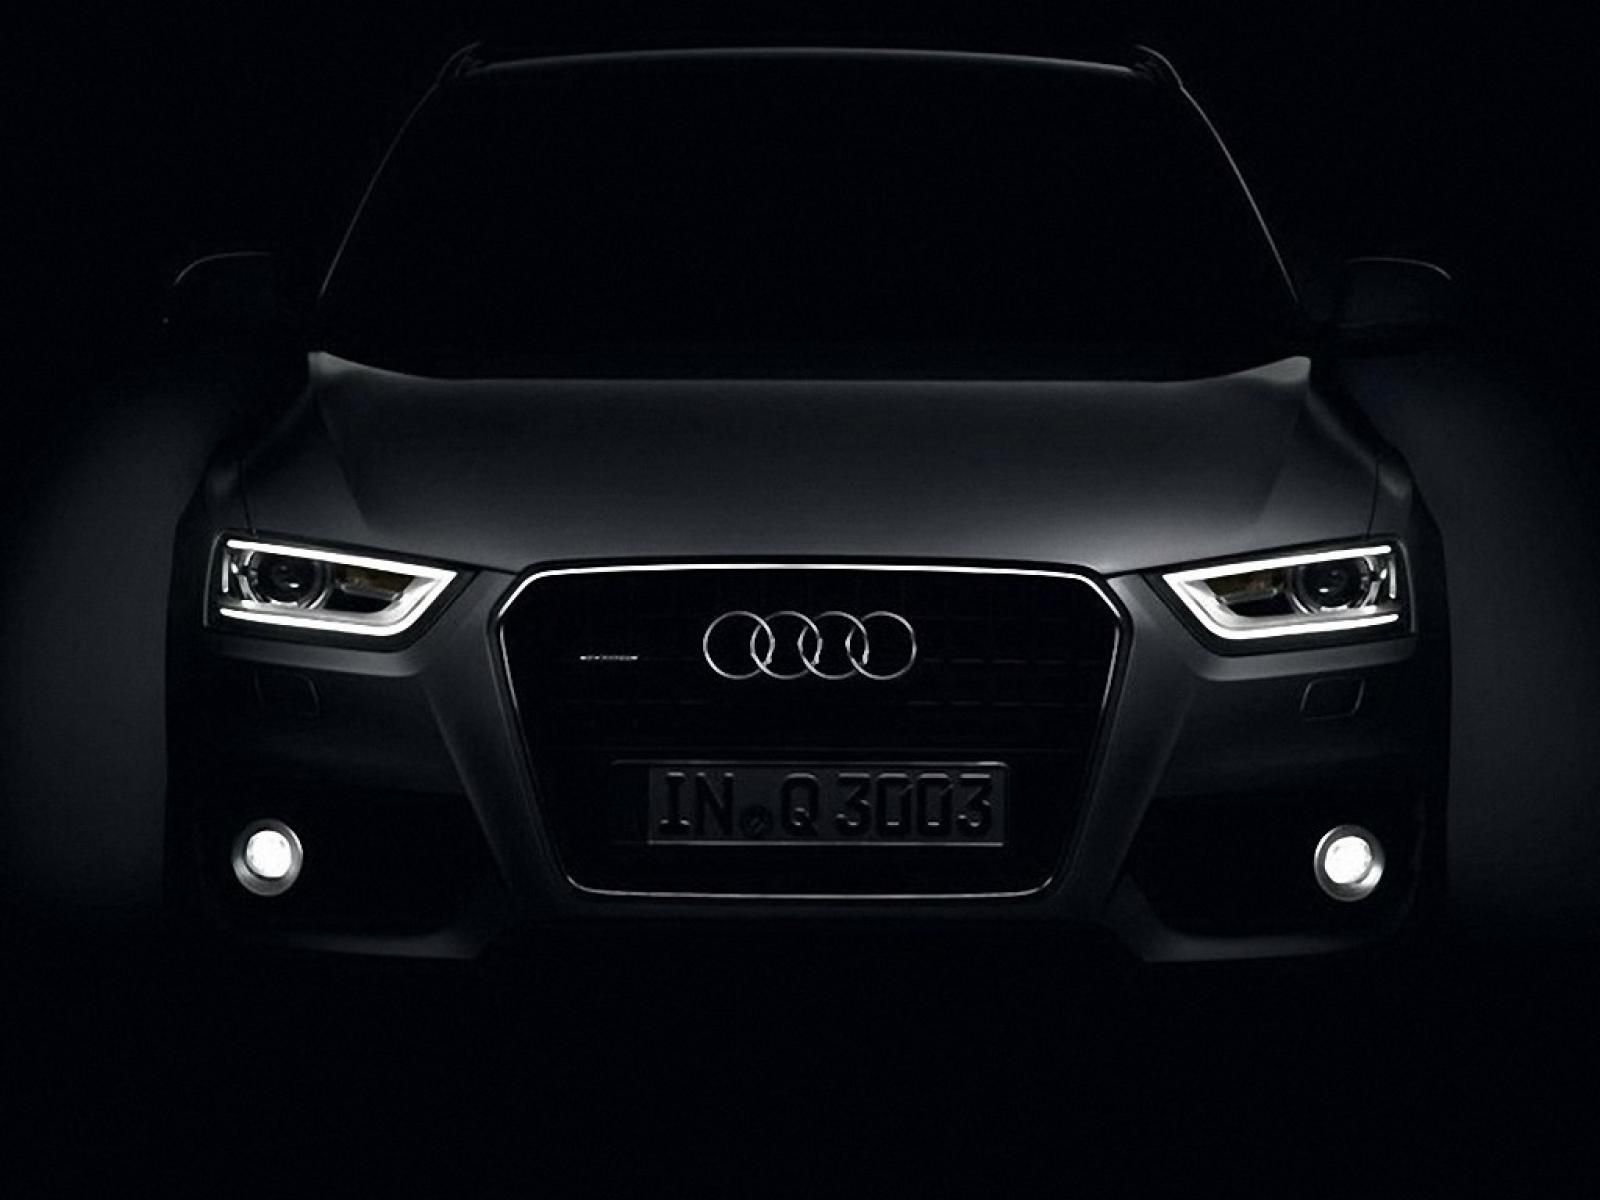 Audi Q3 Wallpapers,AUTO SHANGHAI 2011 Wallpapers & Pictures Free